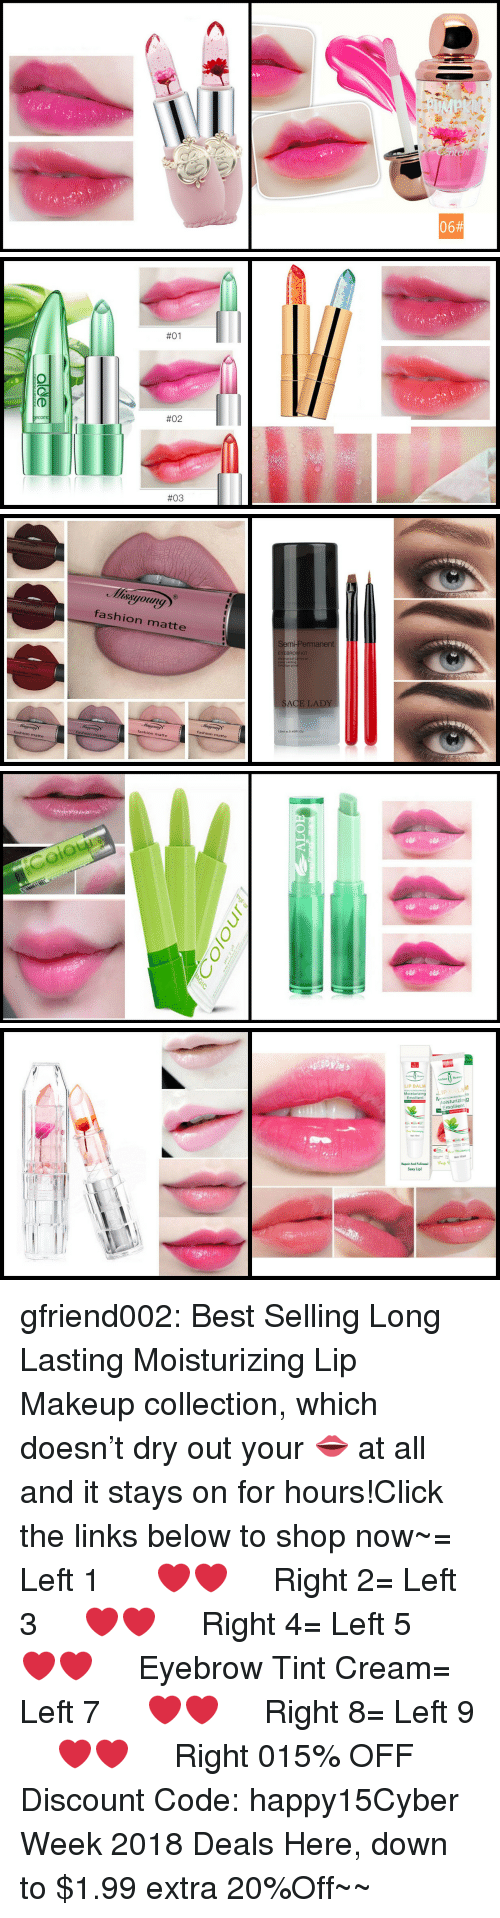 links:  #01  #02  #03   fashion matte  Semi-Permanent  BROW KIT  SACE LADY  12mi.о.0 40FL.Oz  fashion matte  fashion matte  fashion matte  fashion matte   Colour   LIP BALM  Emollient  Moisturizingg  Emollient  Net 10m  Rapair And Fullnessl  Sexy Lipl gfriend002:  Best Selling Long Lasting Moisturizing Lip Makeup collection, which doesn't dry out your 👄 at all and it stays on for hours!Click the links below to shop now~= Left 1   ❤❤   Right 2= Left 3   ❤❤   Right 4= Left 5   ❤❤   Eyebrow Tint Cream= Left 7   ❤❤   Right 8= Left 9   ❤❤   Right 015% OFF Discount Code: happy15☞Cyber Week 2018 Deals Here, down to $1.99  extra 20%Off~~